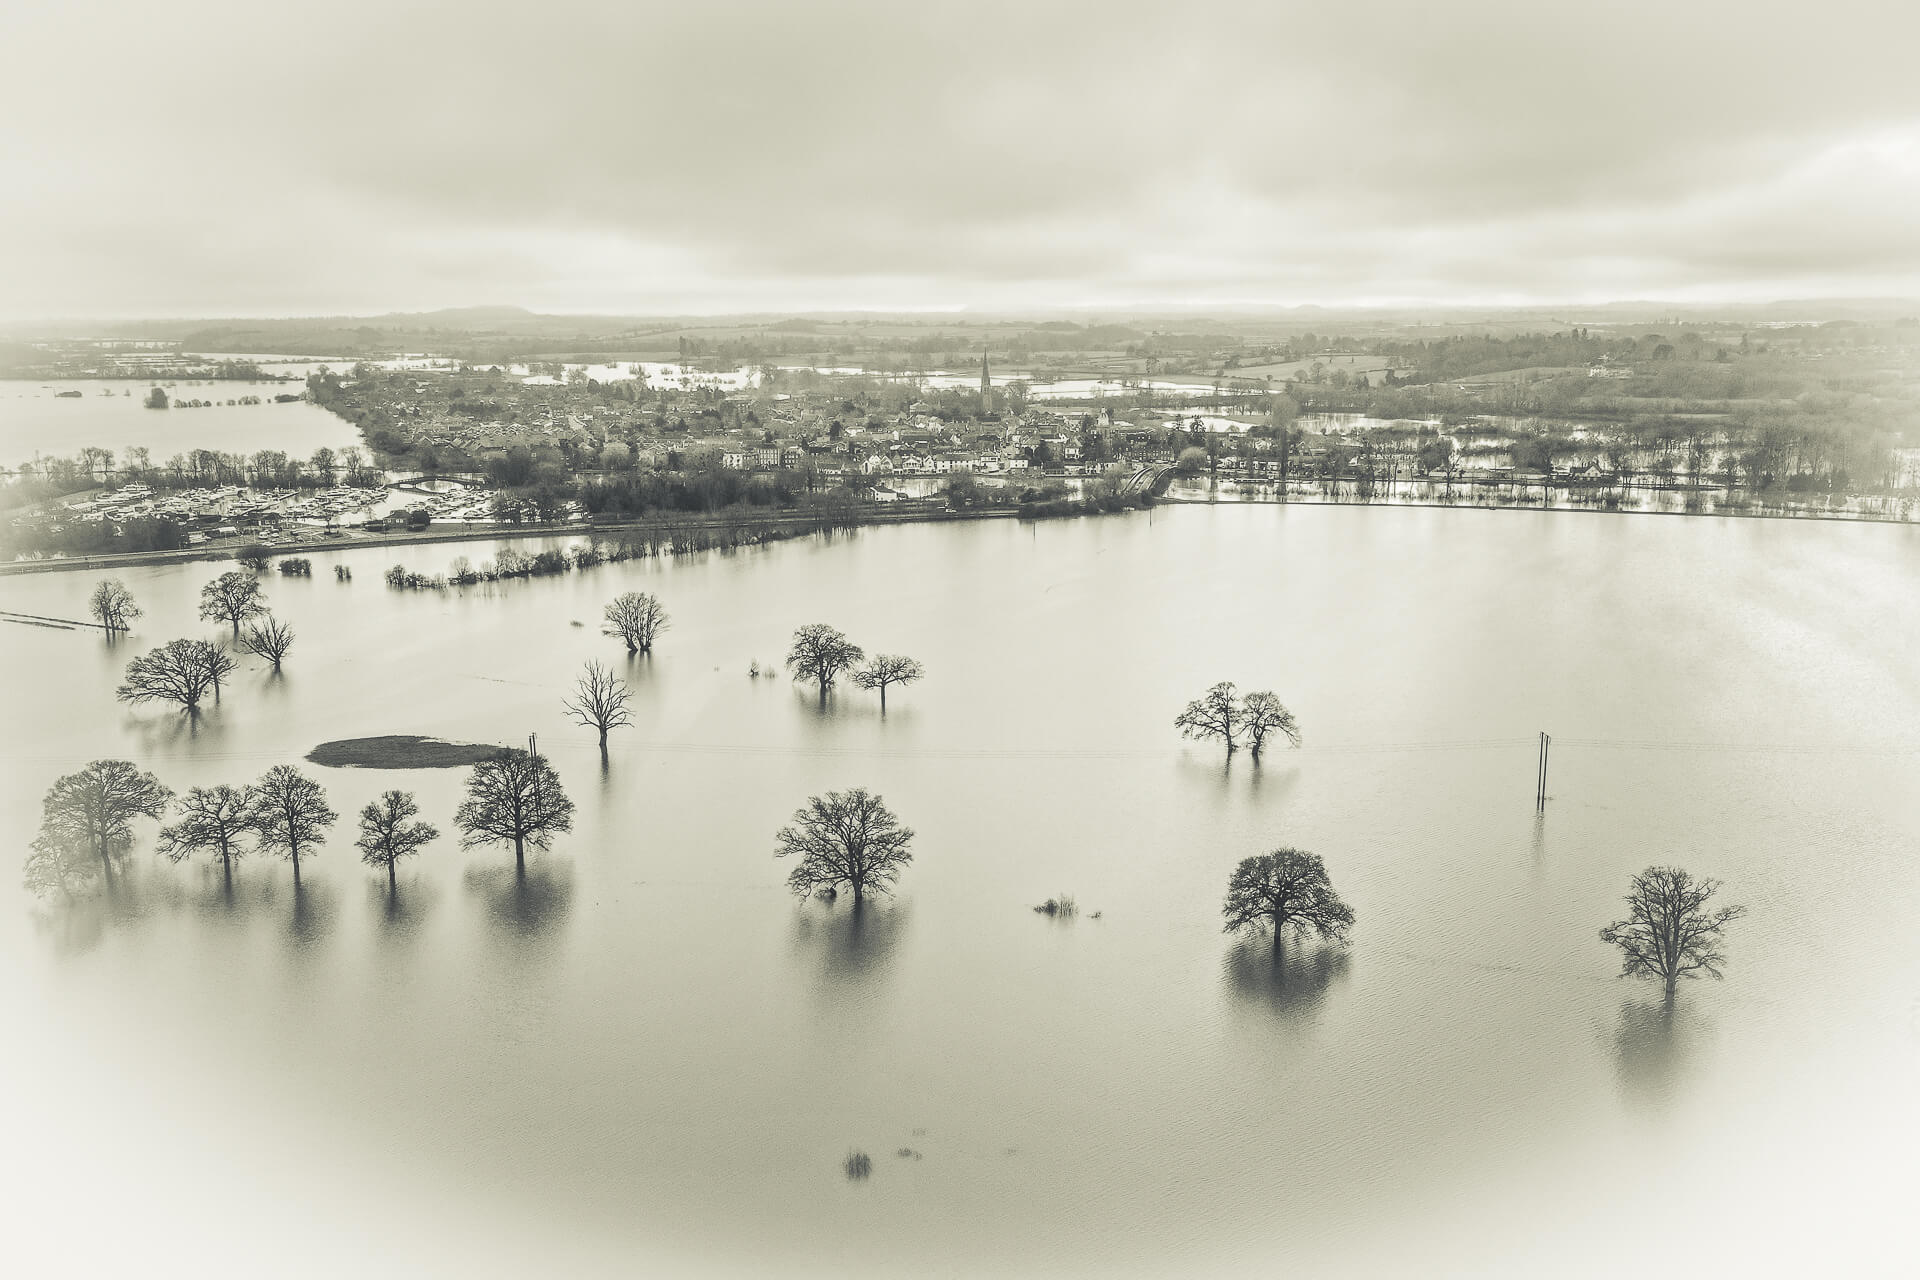 A B&W image of the flooding around Upton-Upon-Severn as seen from the air; taken with a DJI Mavic 2 Pro in February 2021